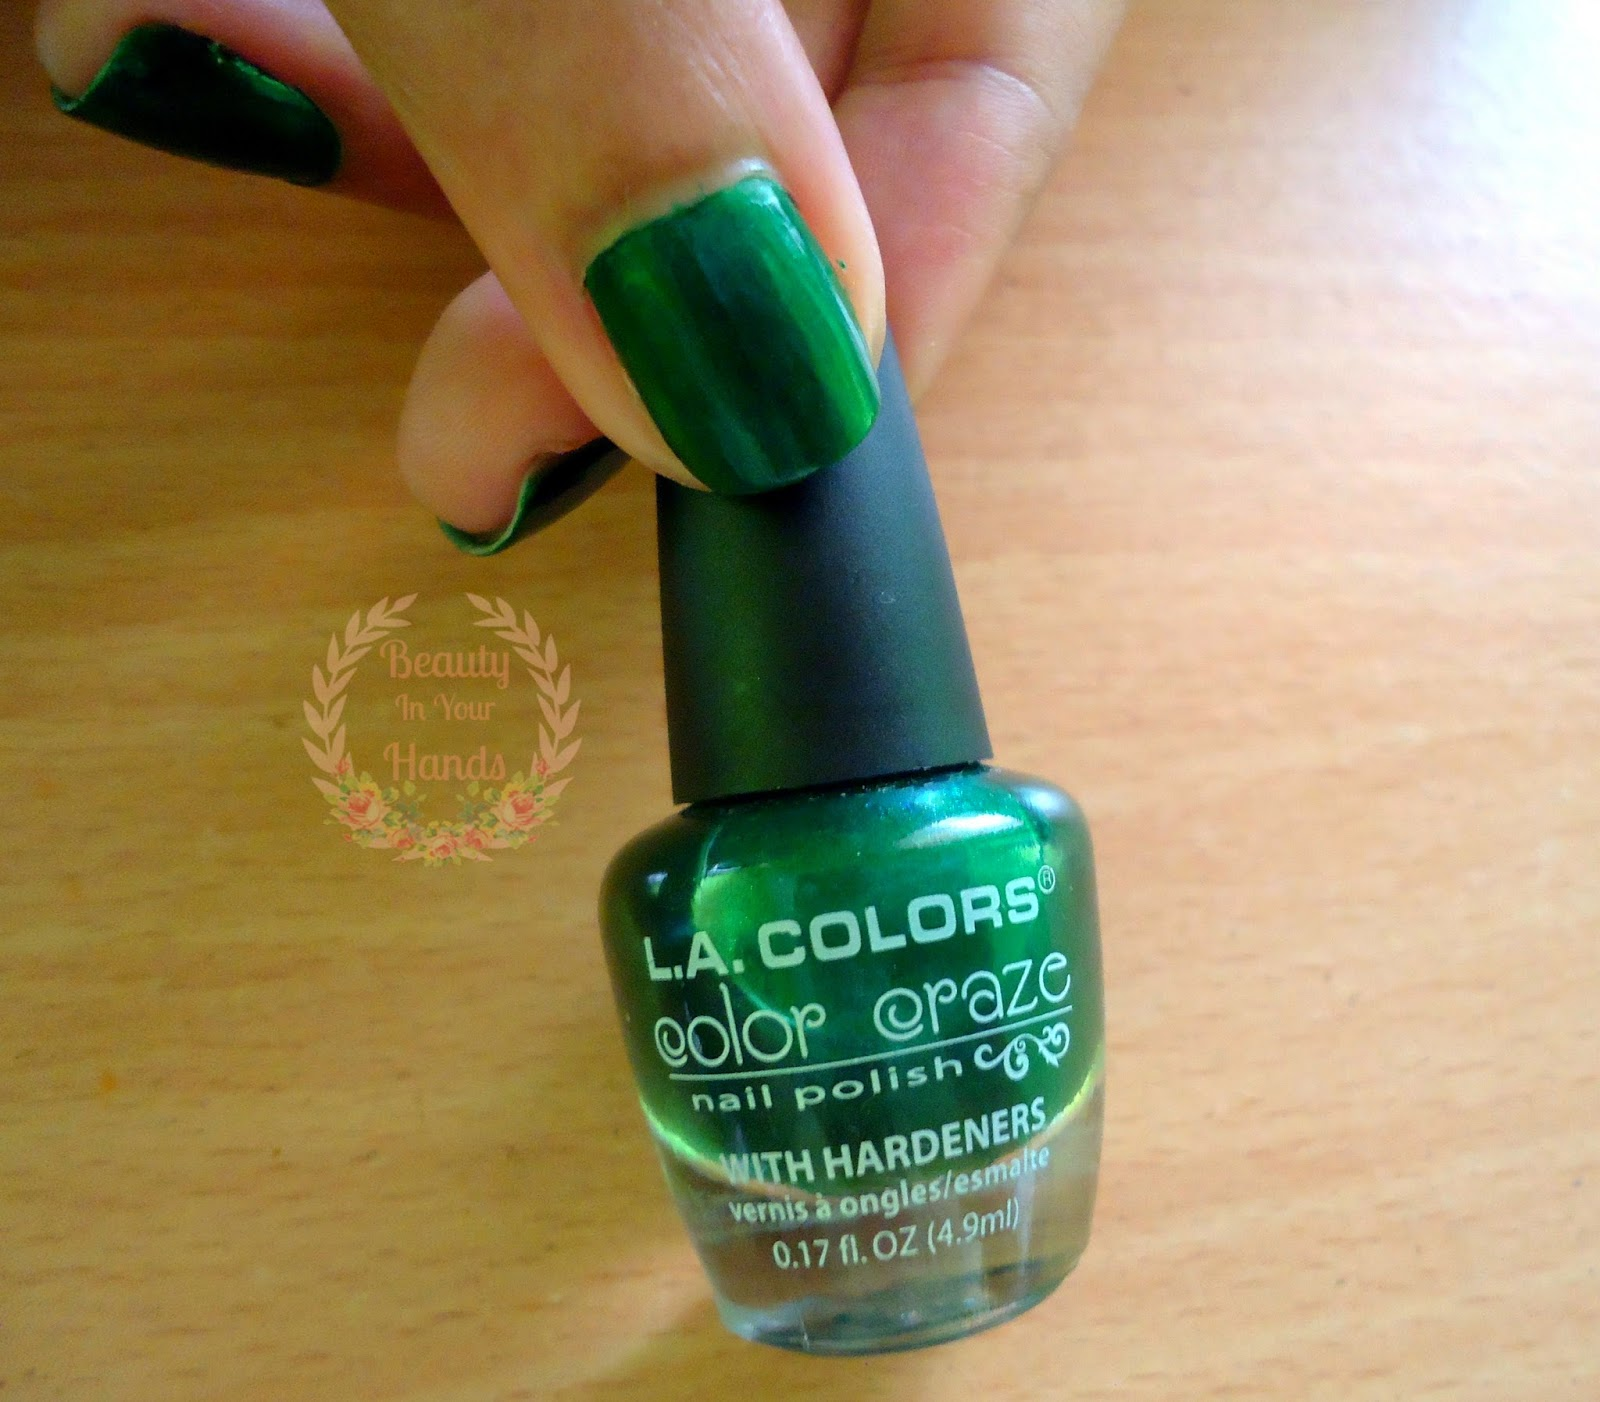 L A Colors Color Craze Nail Polish With Hardeners